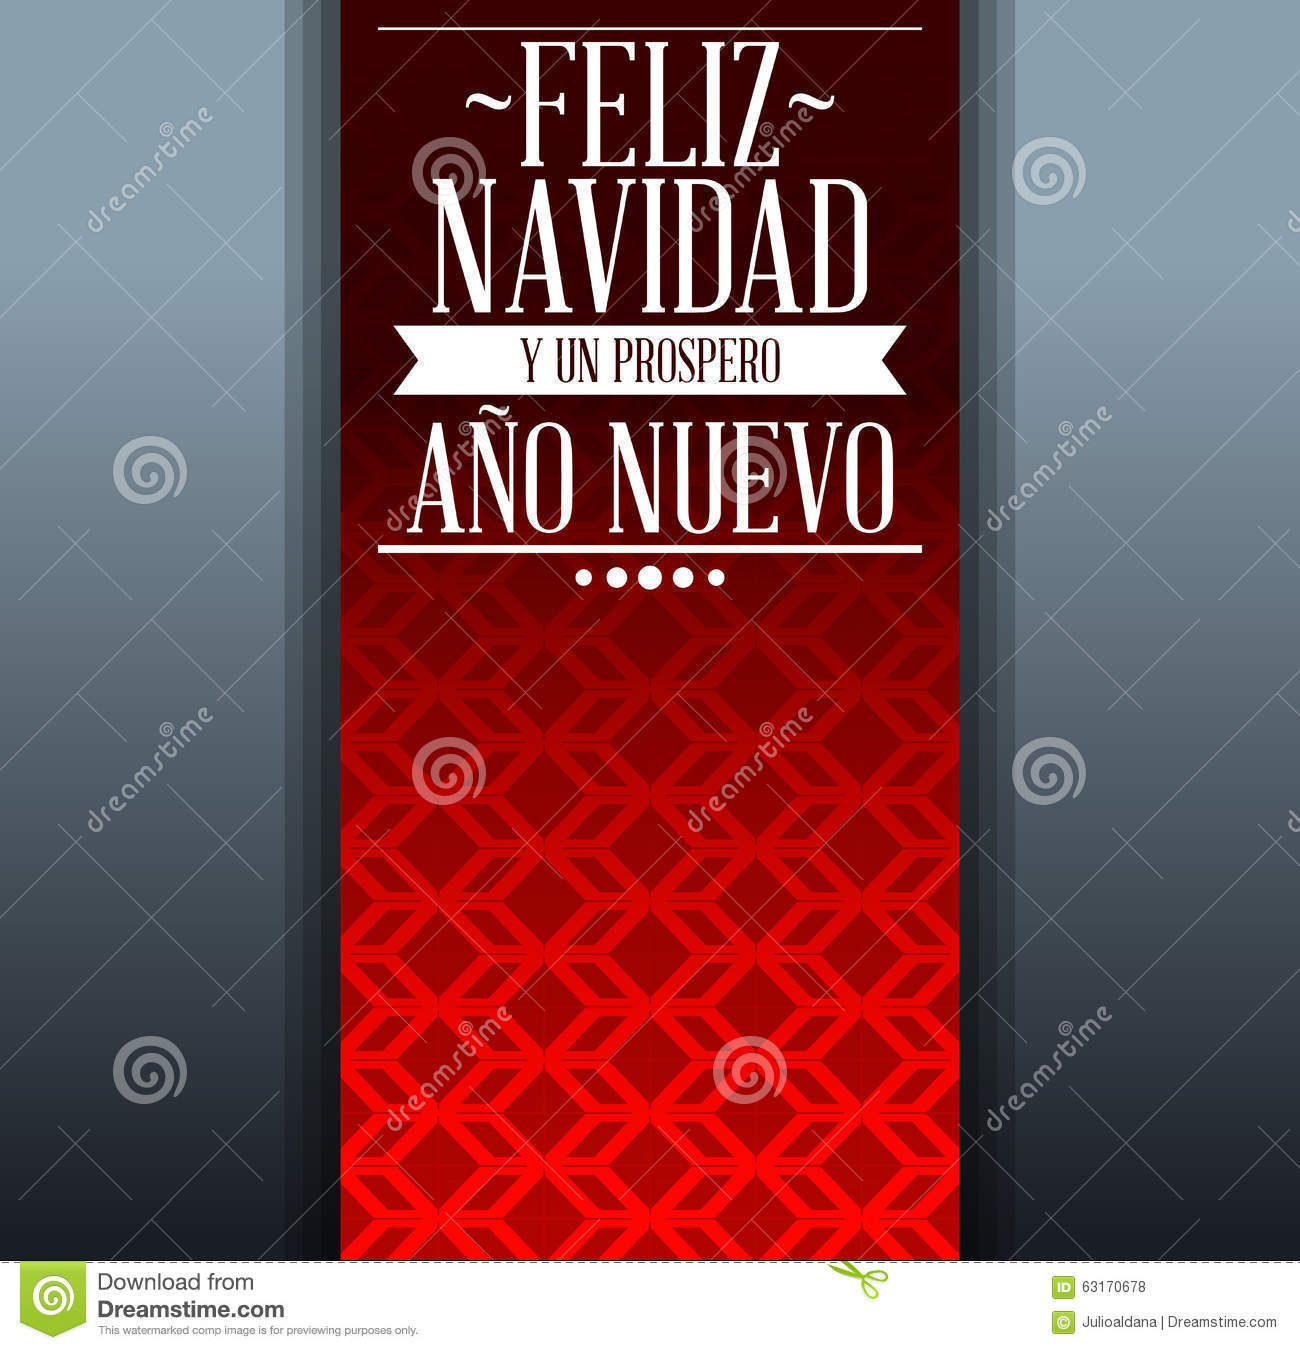 download feliz navidad y prospero ano nuevo merry christmas and happy new year spanish text